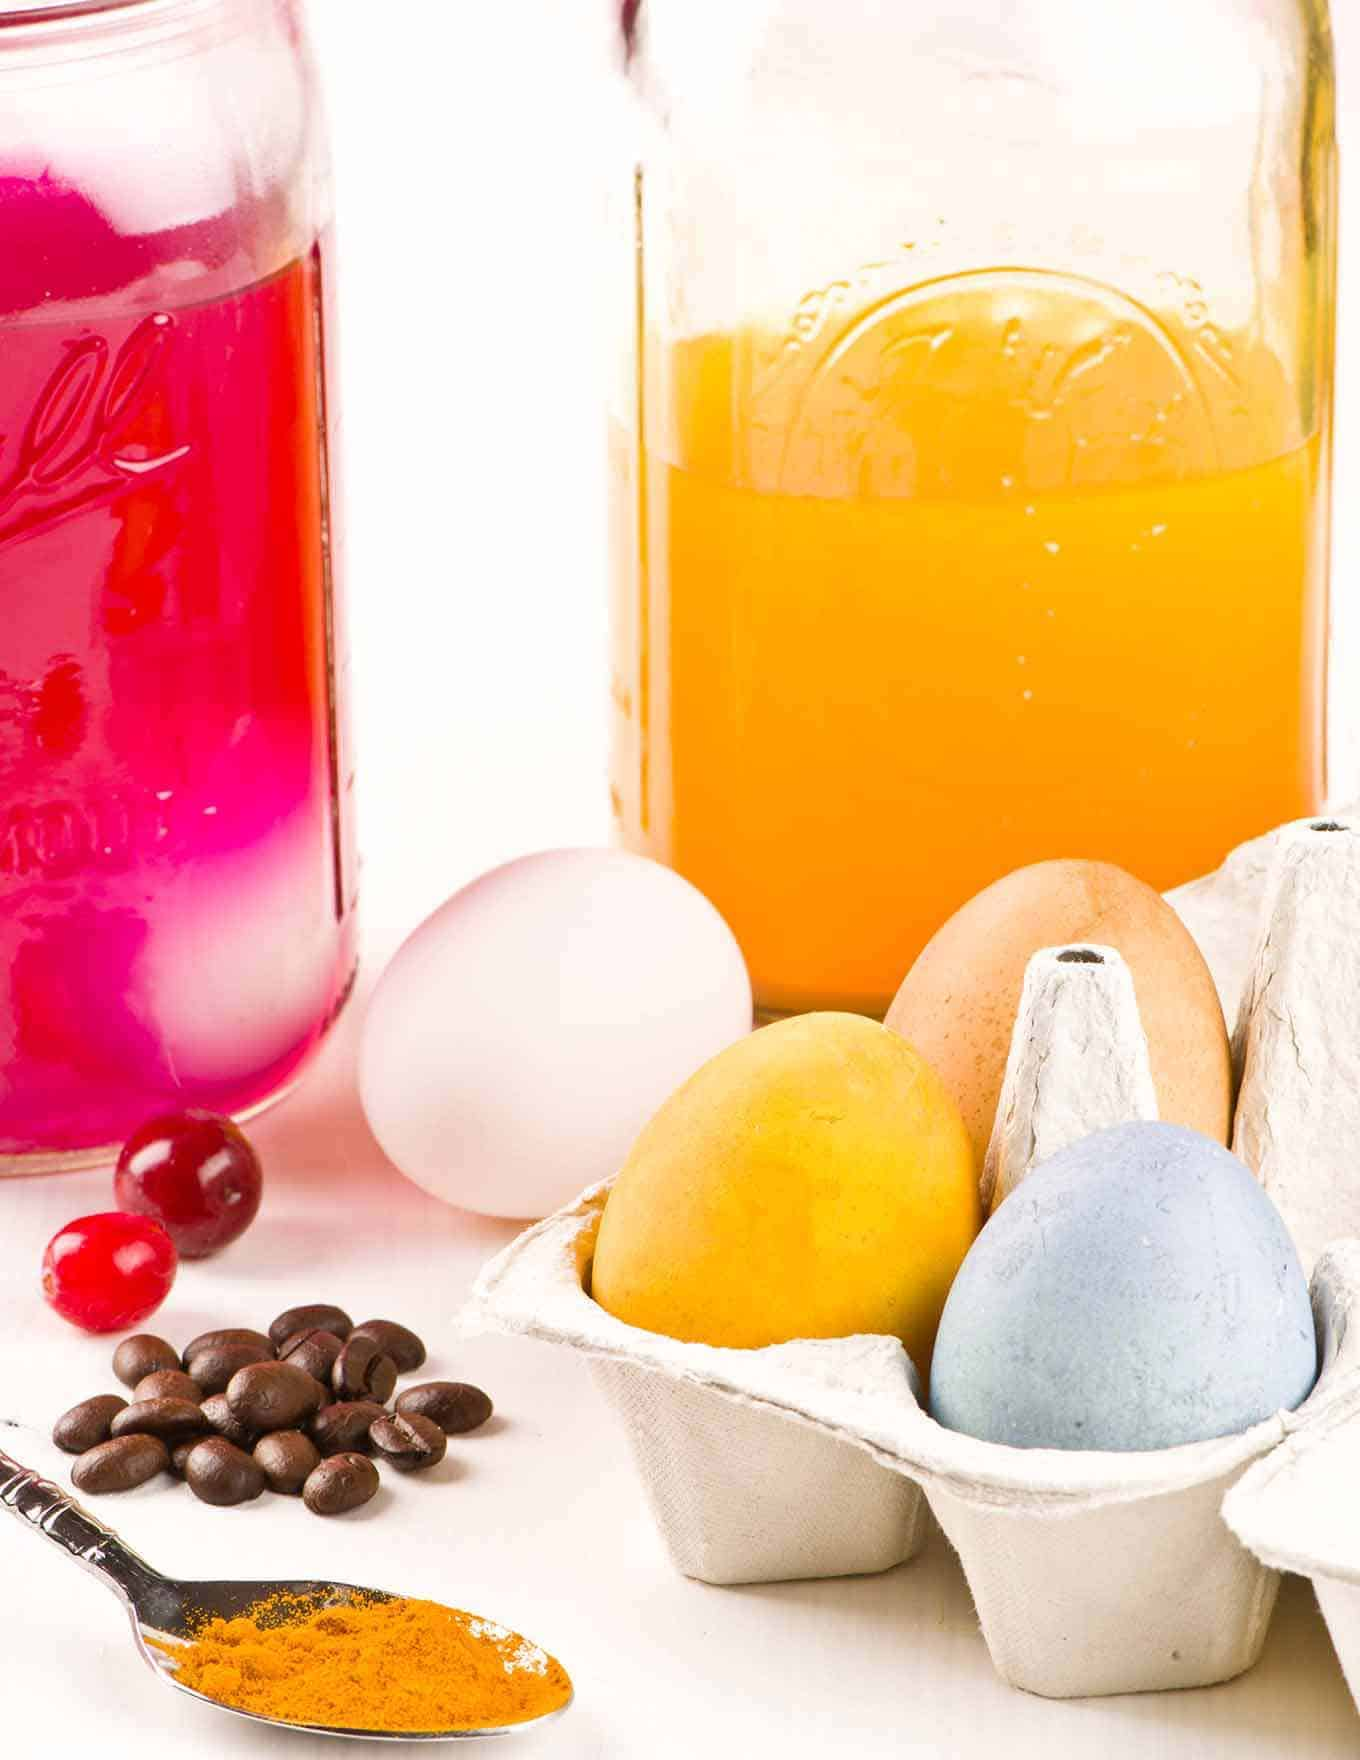 Naturally dyed eggs in an open carton with glass jars of yellow and red dye in the background.